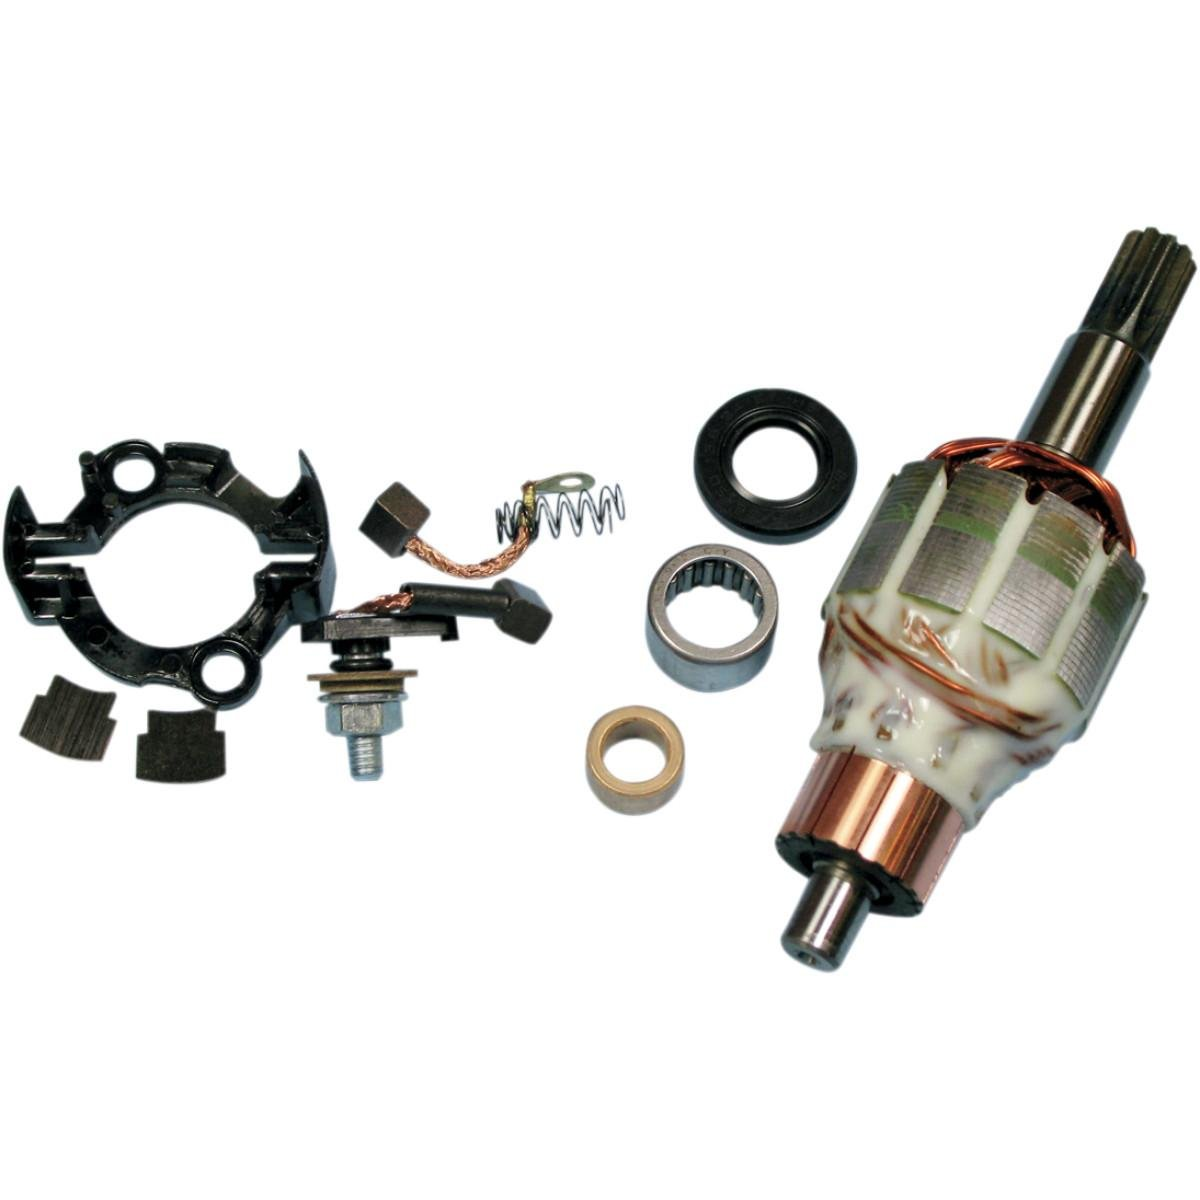 Ricks Motorsport Electric Starter Rebuild Kit 70-604